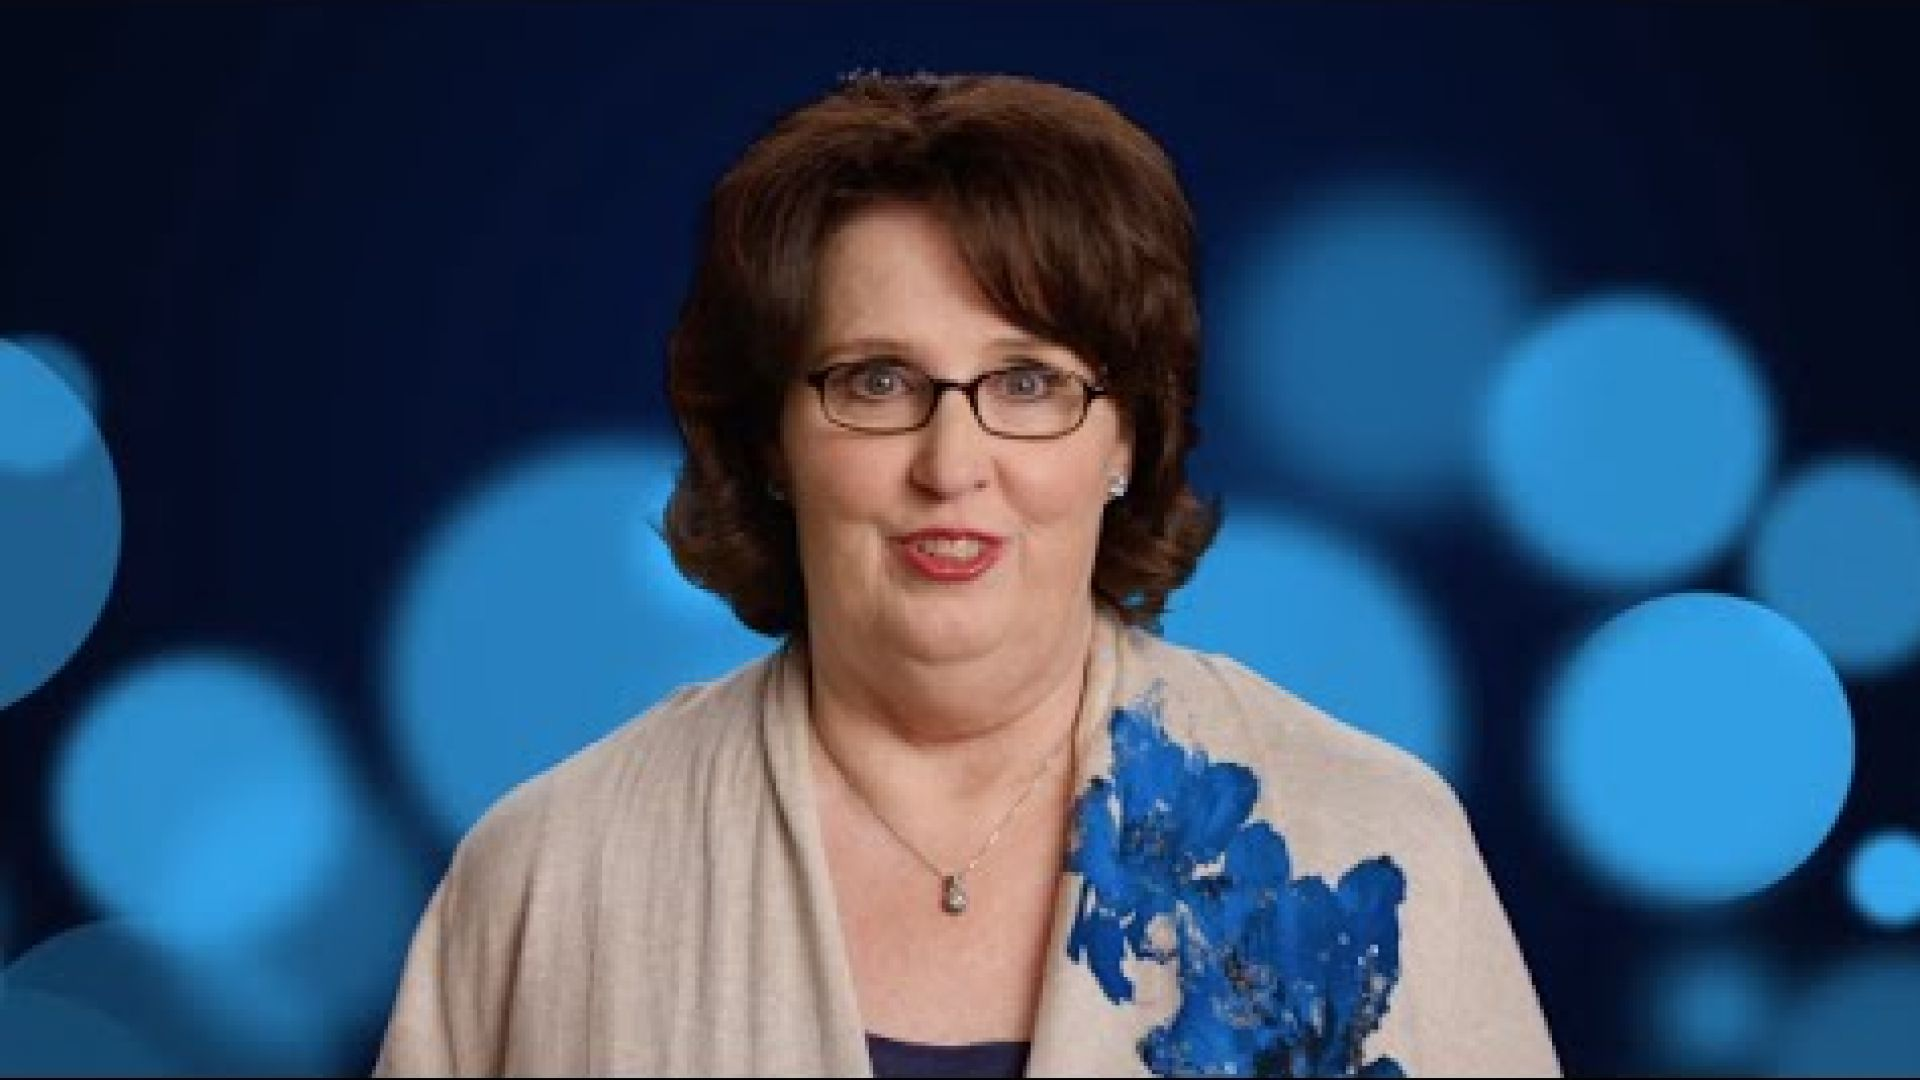 The Office's Phyllis Smith is Sadness in Pixar's Inside Out